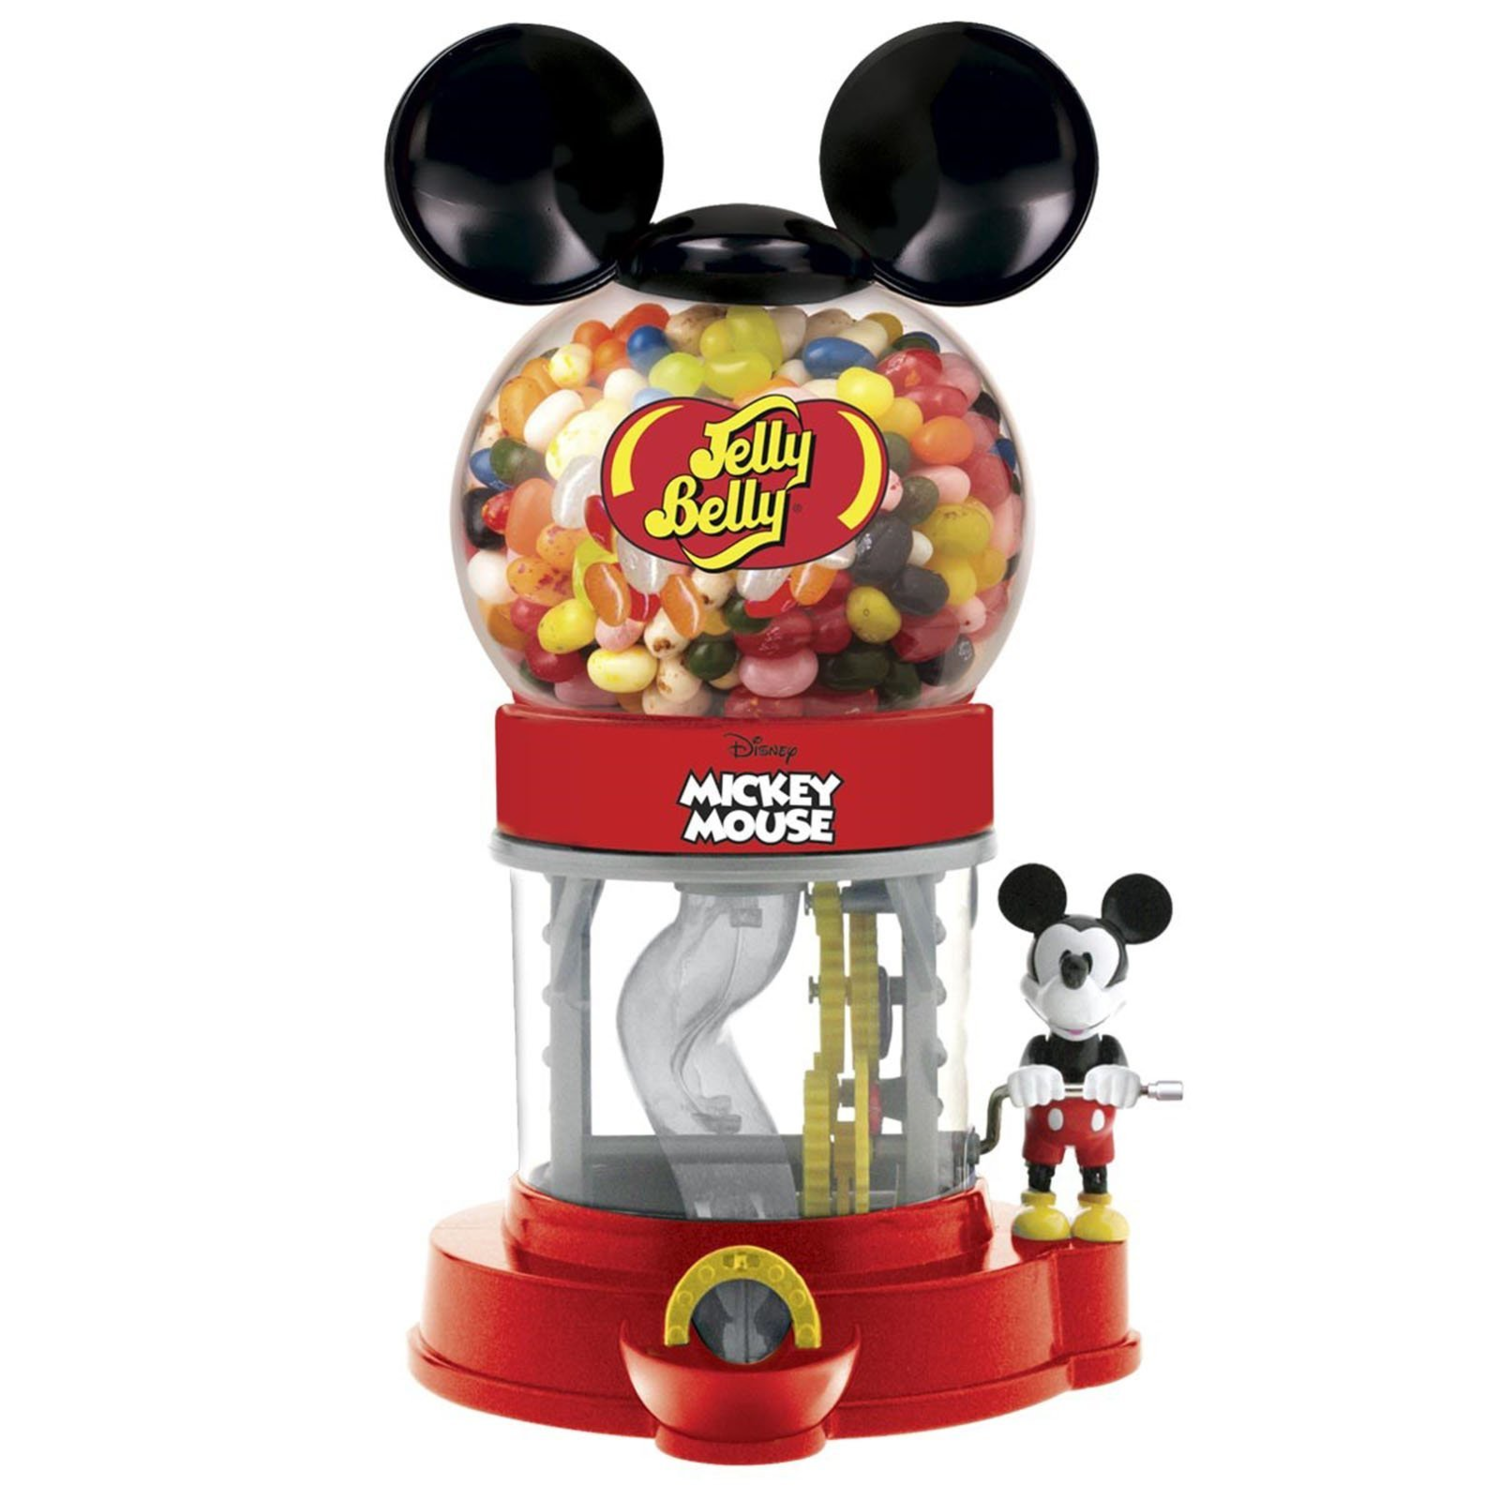 Mickey Mouse Bean Dispenser